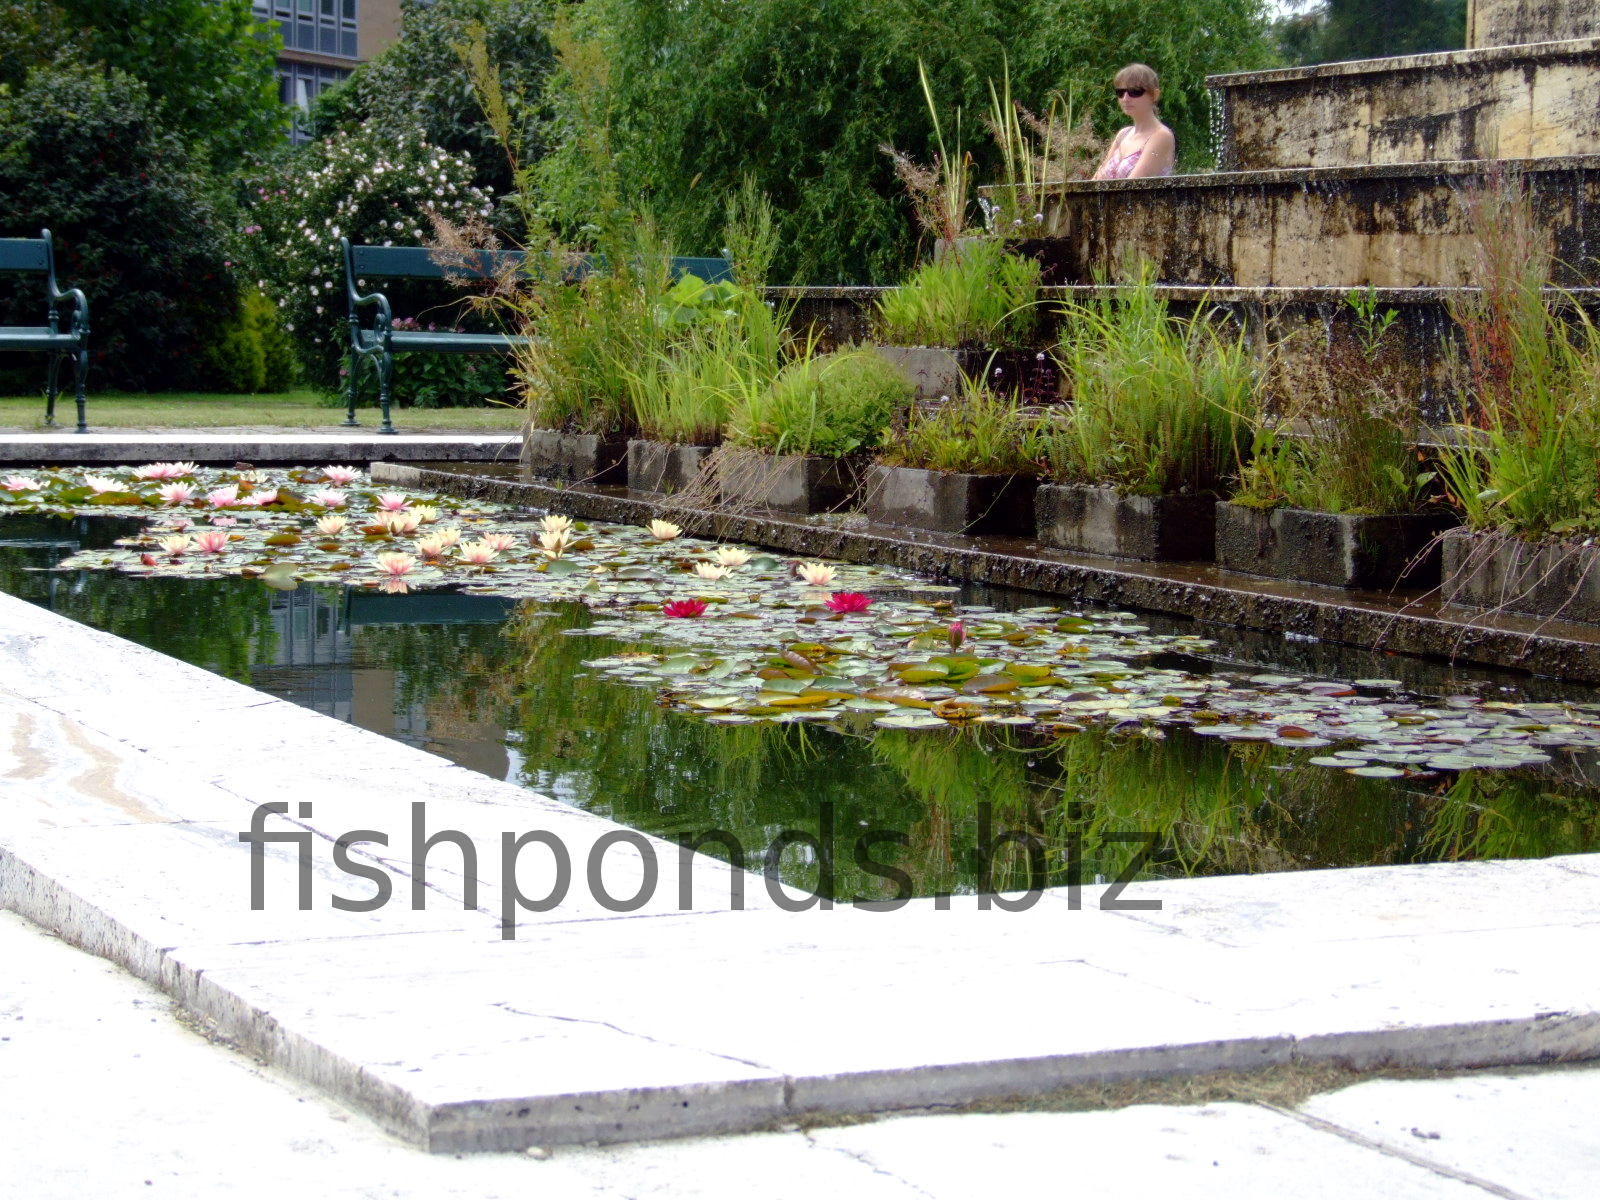 Fish pond design ideas for How to design a pond